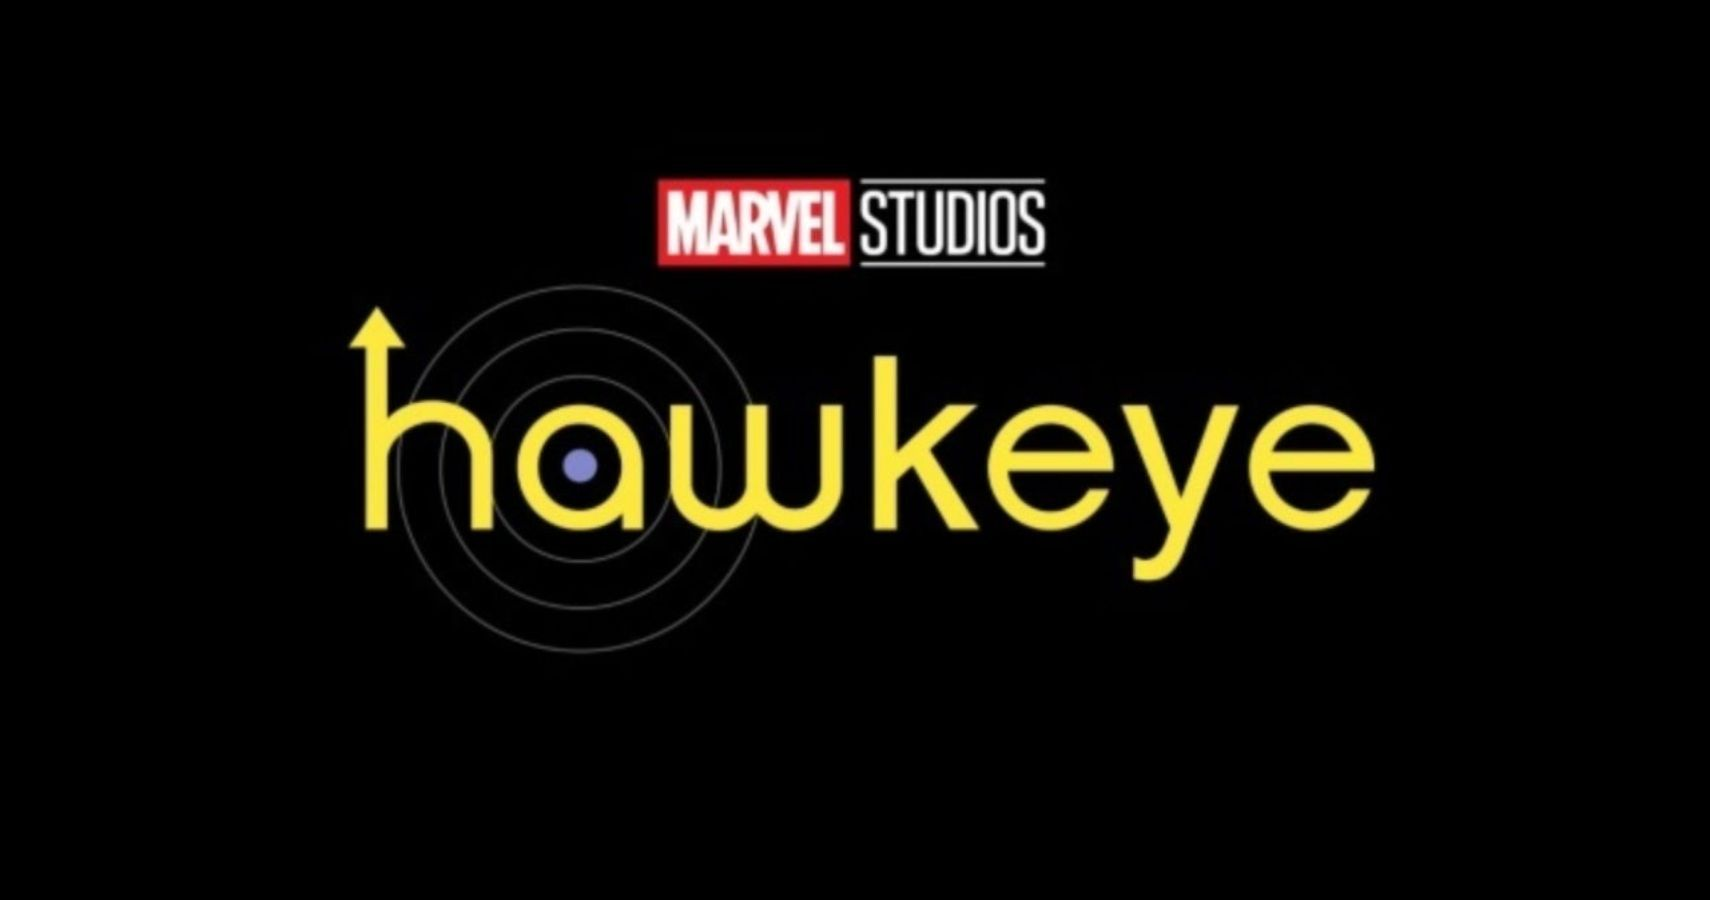 Jeremy Renner Confirms Hawkeye Has Wrapped Filming